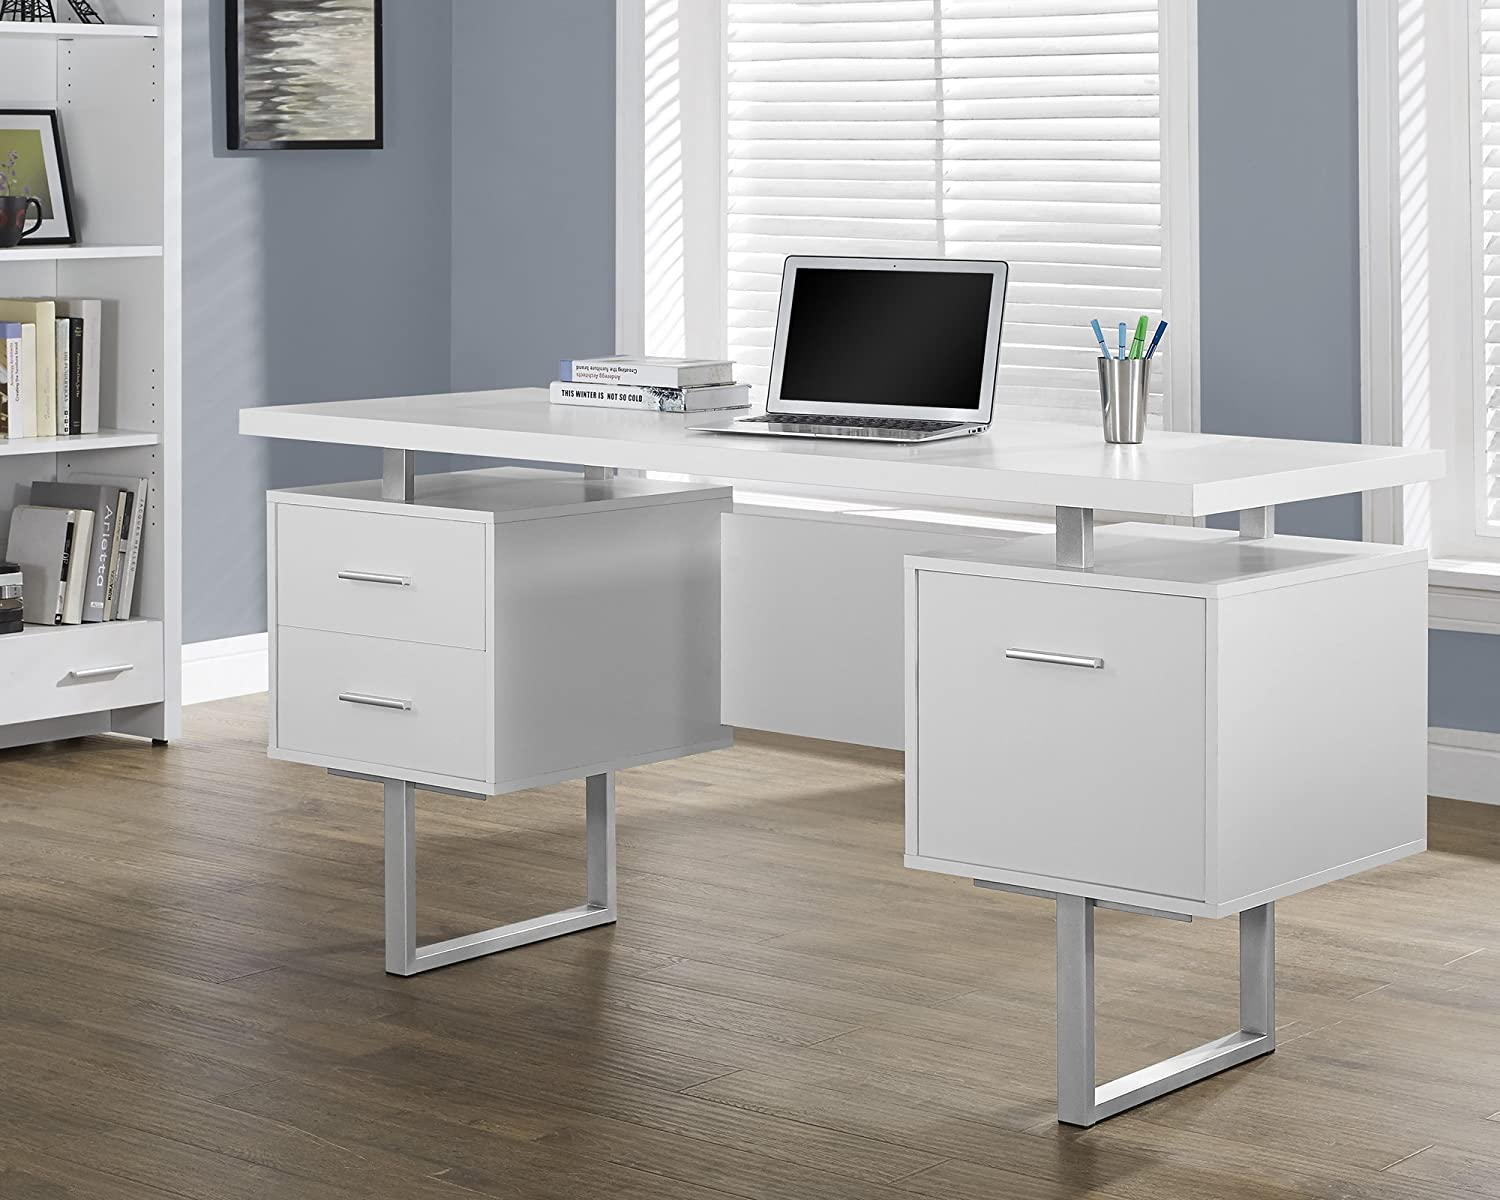 Amazon com  Monarch Specialties White Hollow Core Silver Metal Office Desk   60 Inch  Kitchen   Dining. Amazon com  Monarch Specialties White Hollow Core Silver Metal